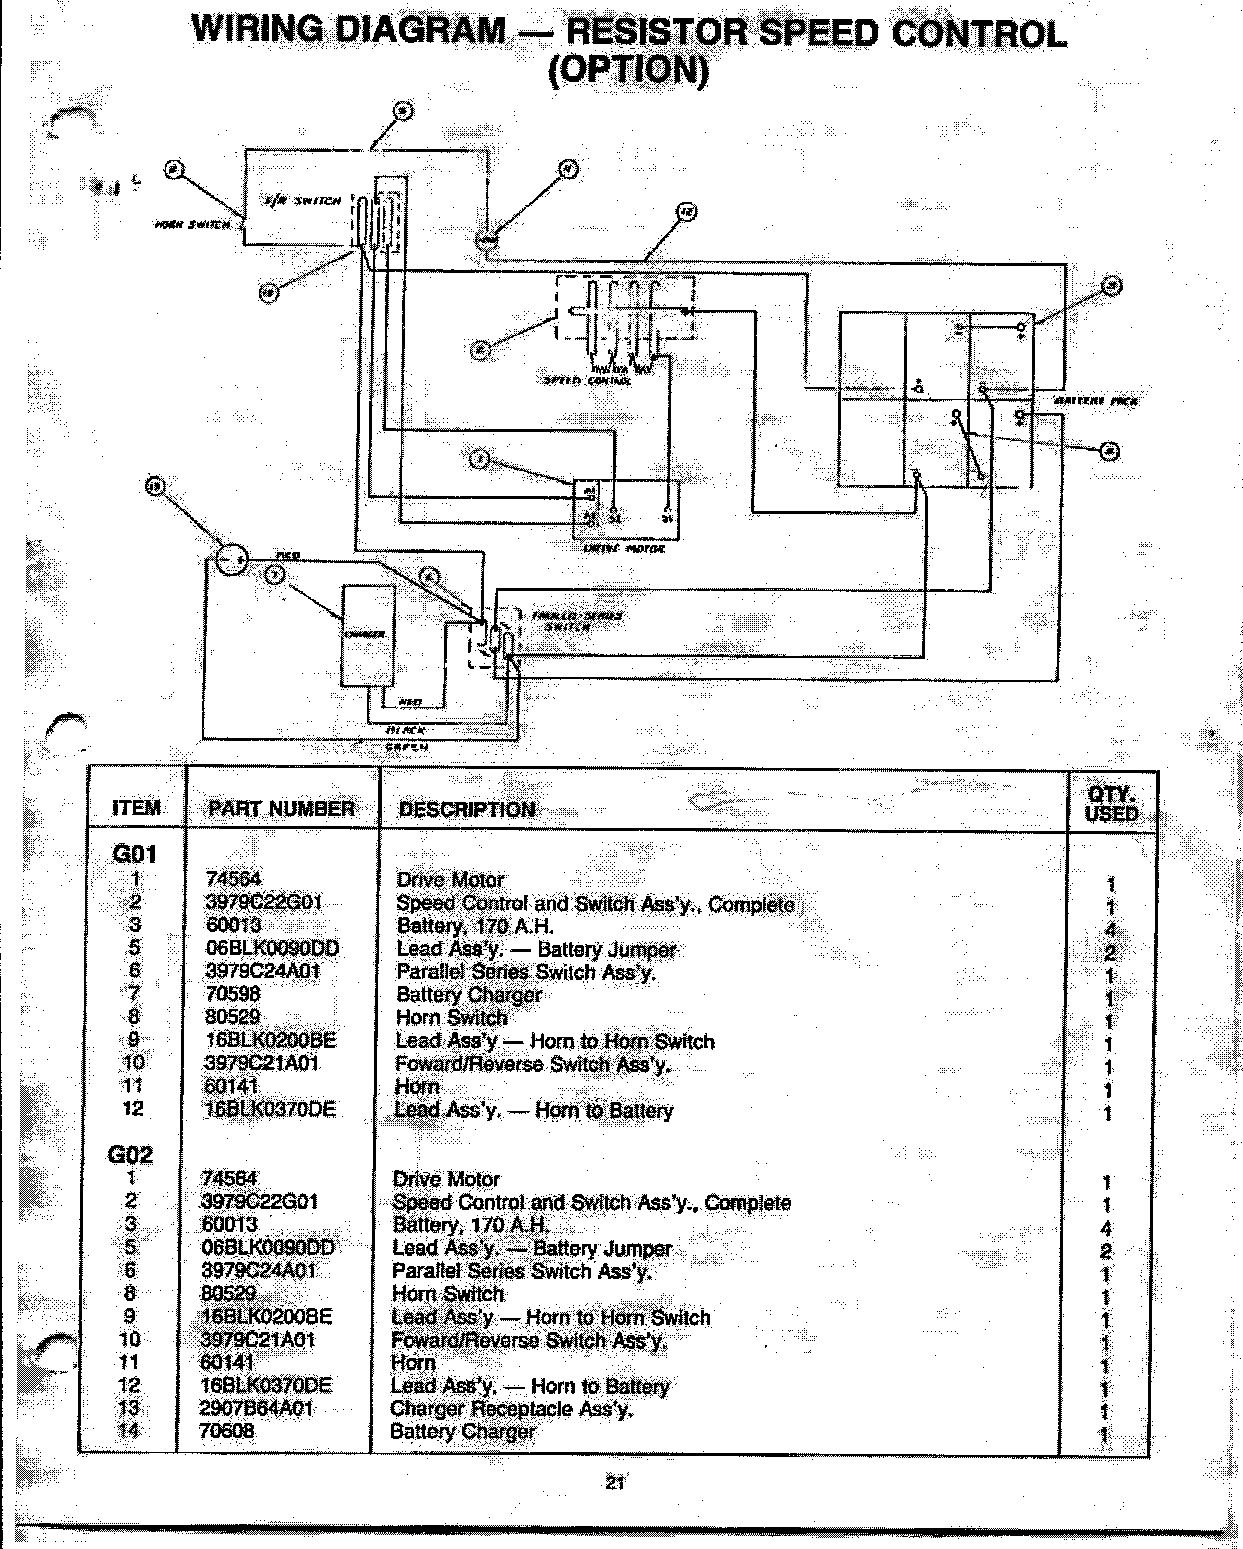 Wiring Diagram For 437 Westinghouse Golf Cart